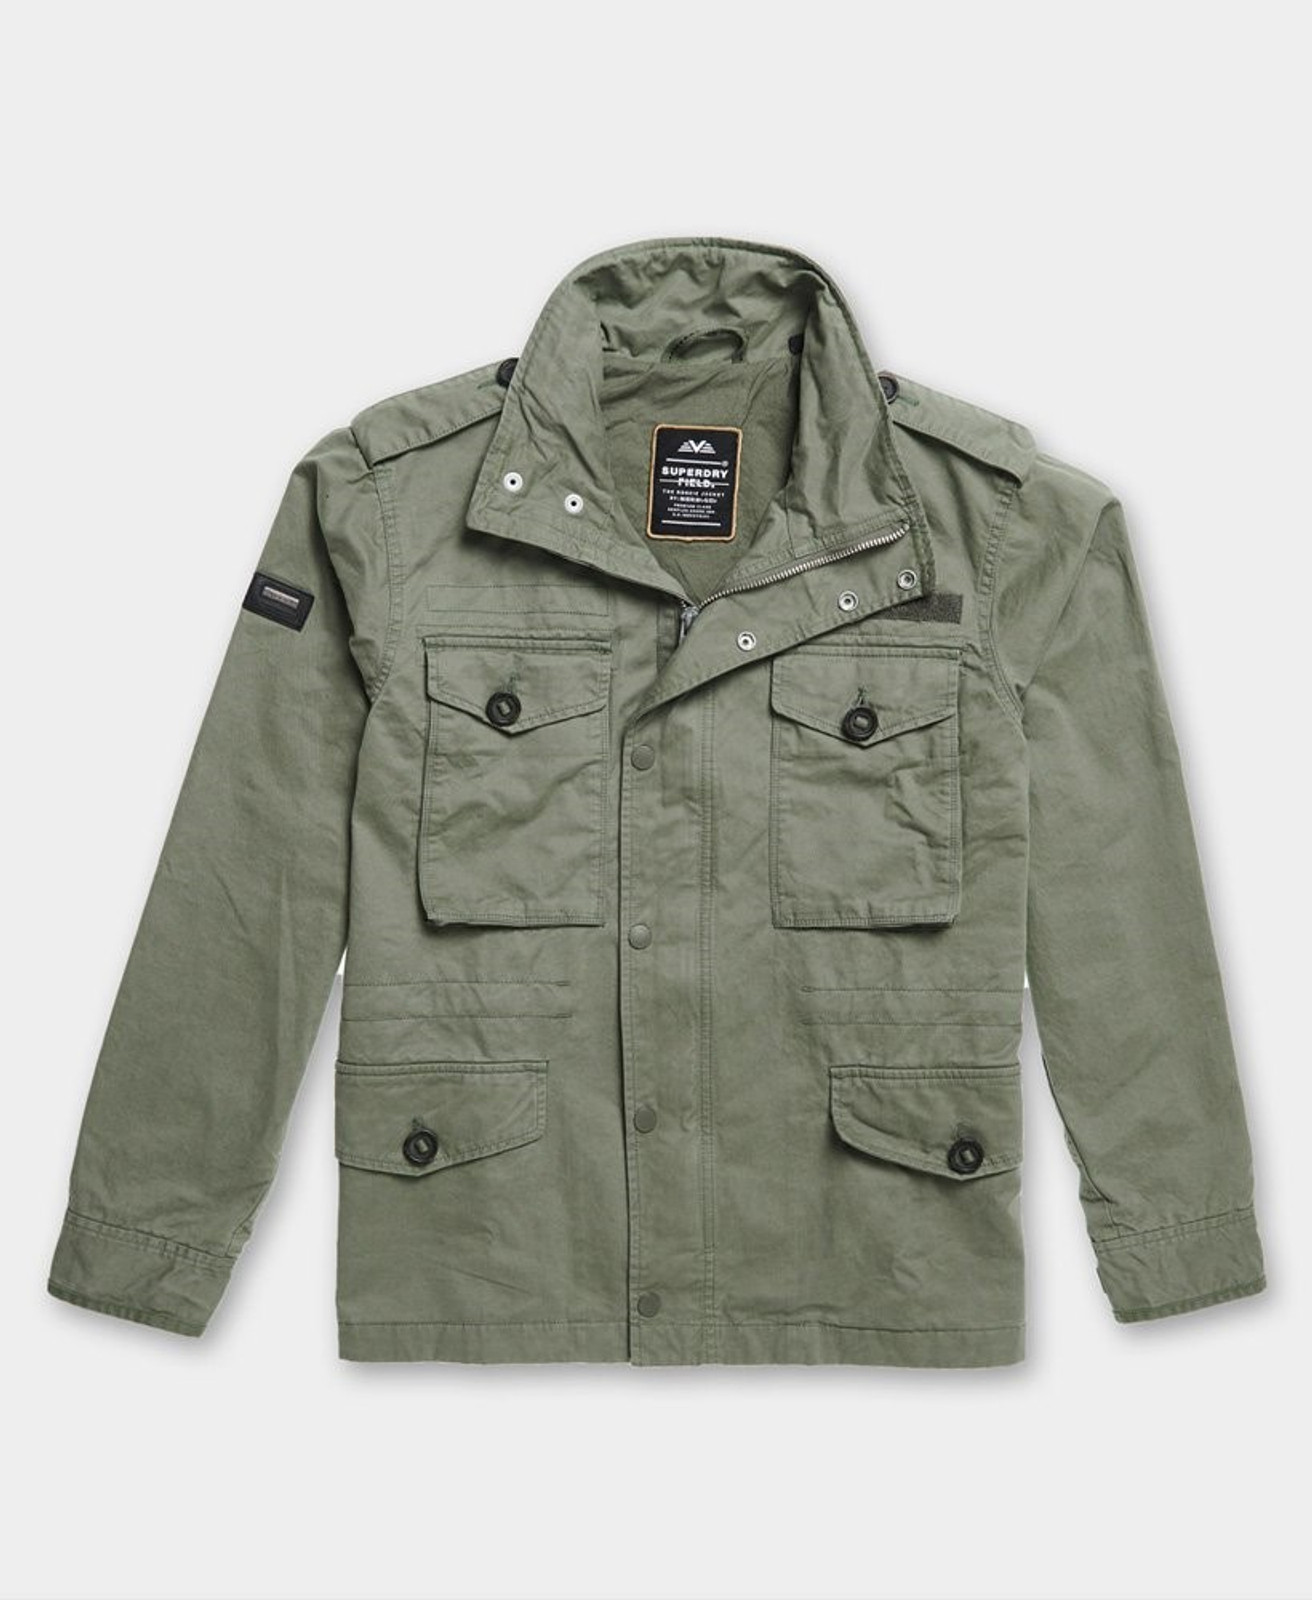 Superdry Mens FIELD JACKET Green Military Jackets 1